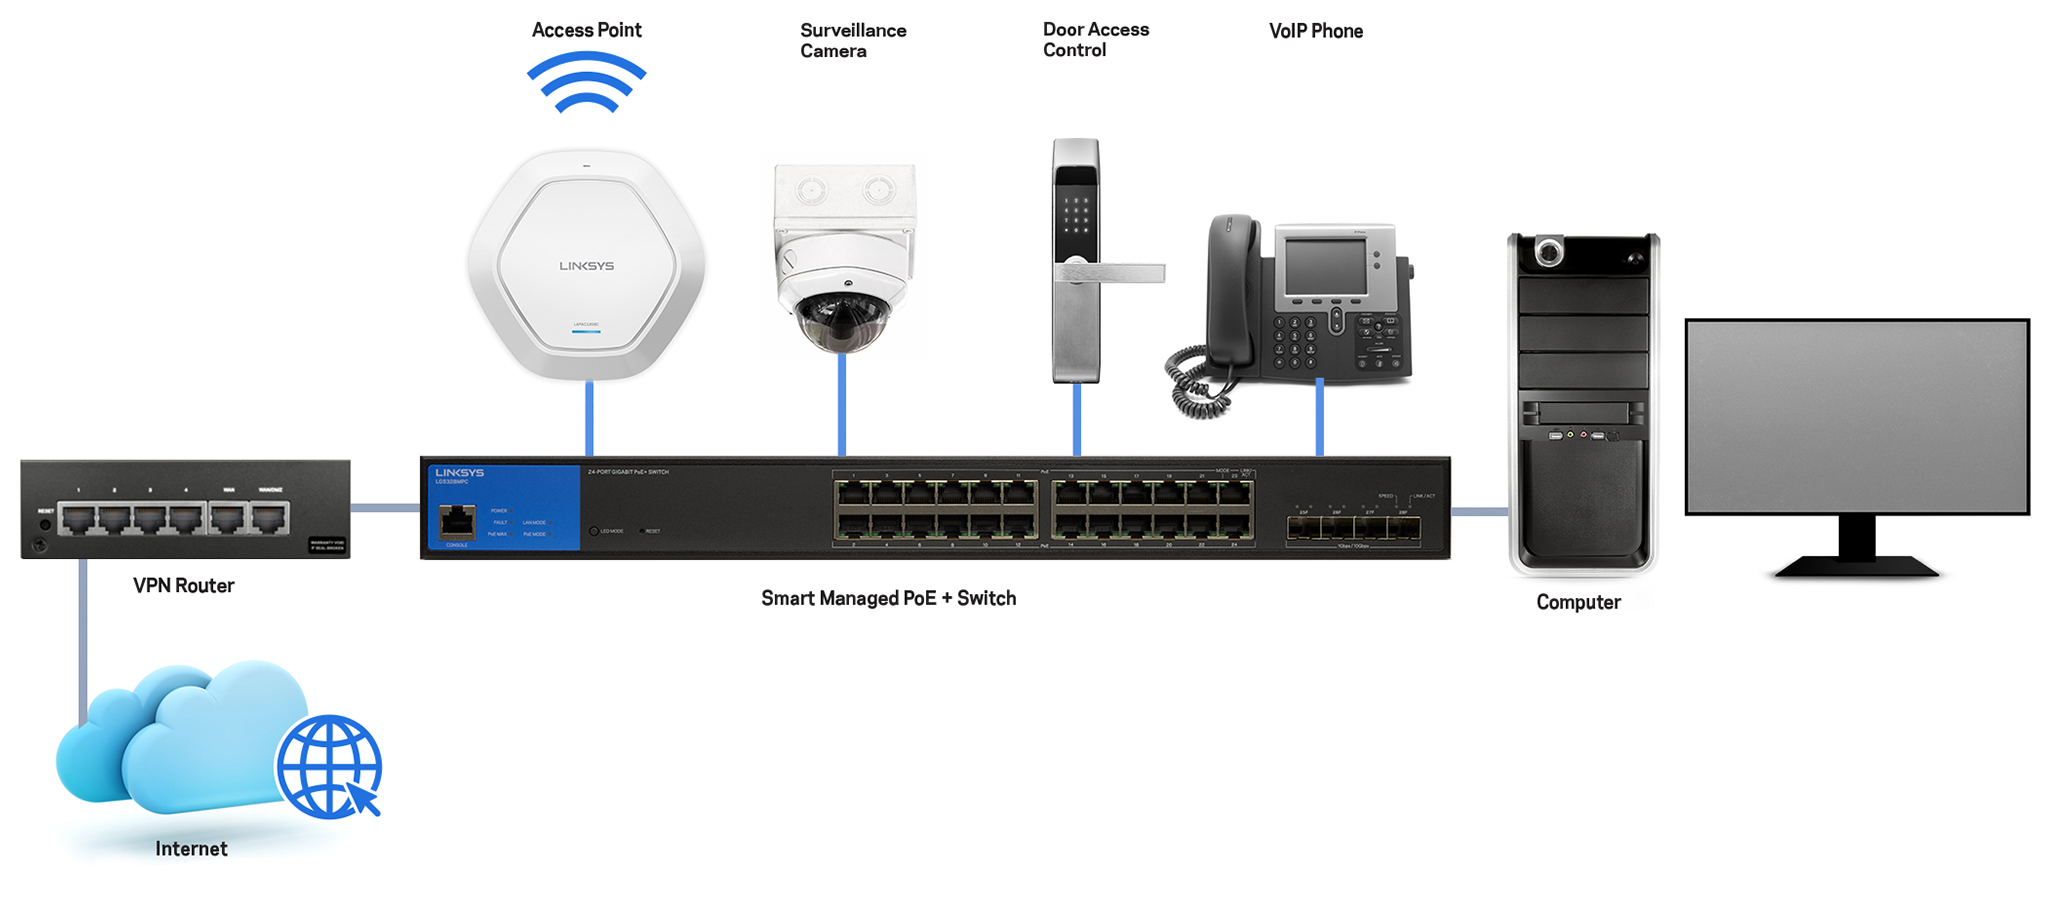 Can power PoE+ enabled devices such as surveillance cameras, access points, door access control systems, and ProAV systems